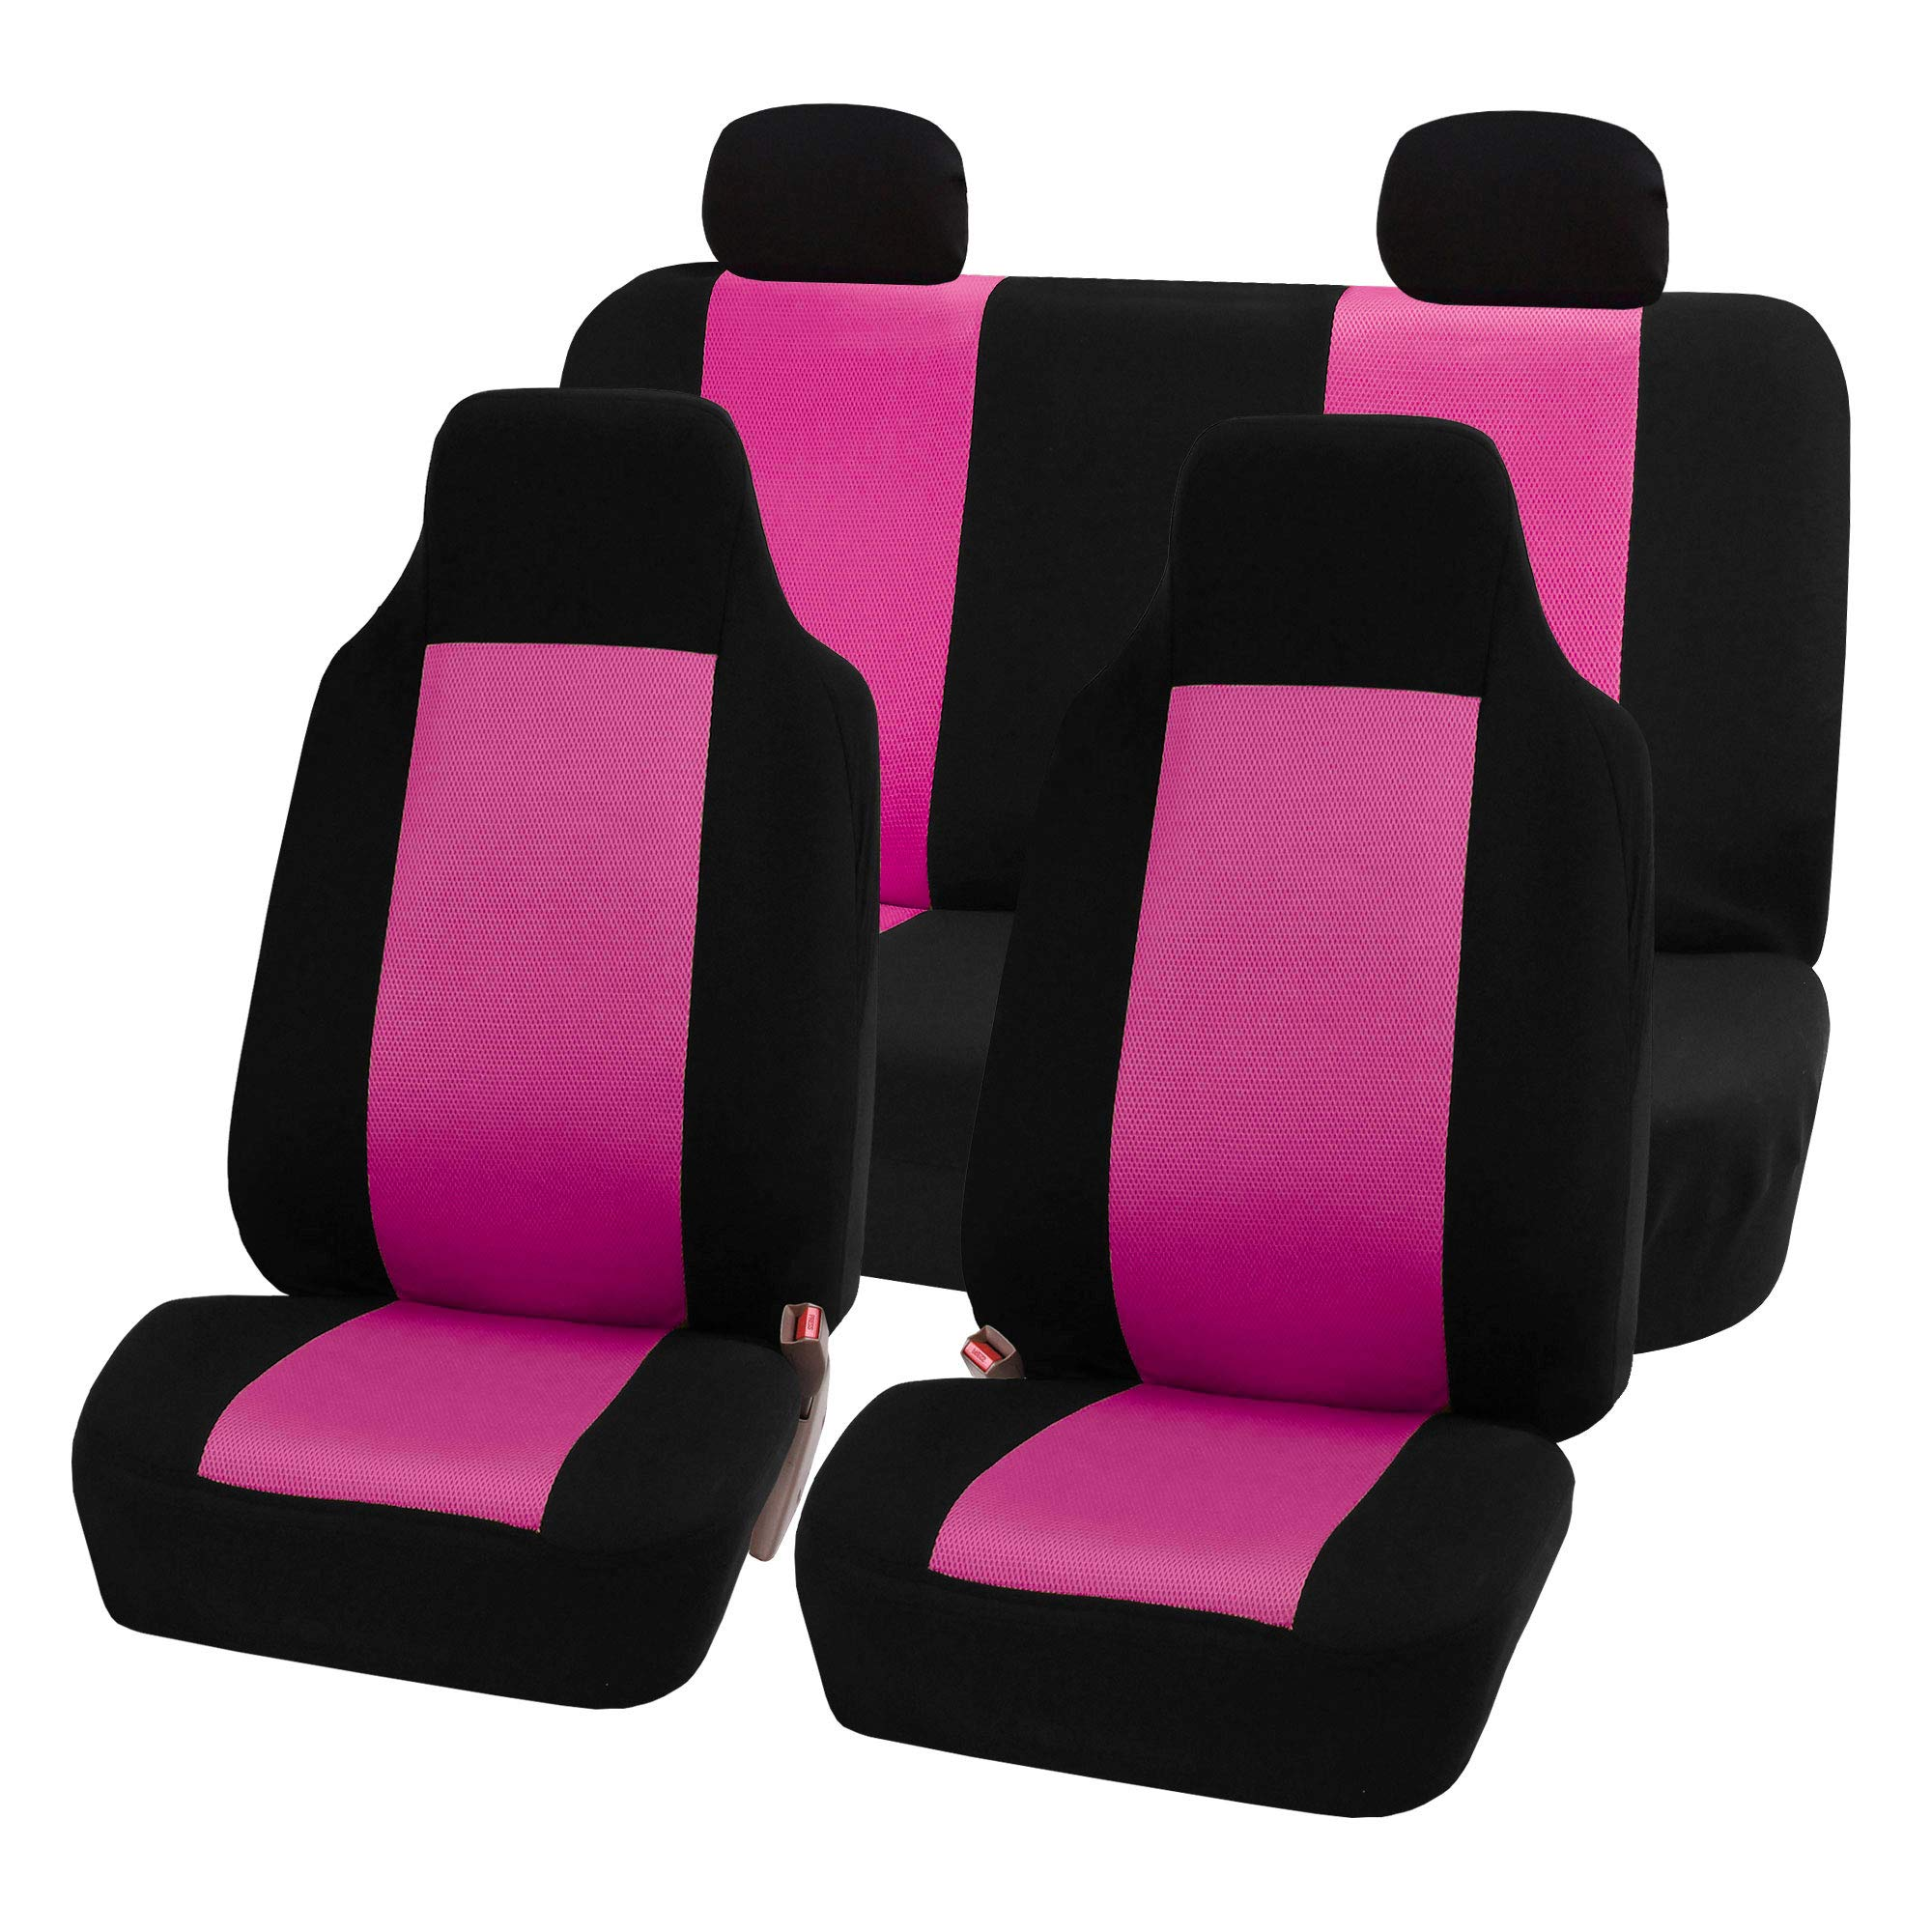 Pink FH Group FB033PINK102 Bucket Seat Cover Modernistic Airbag Compatible Set of 2